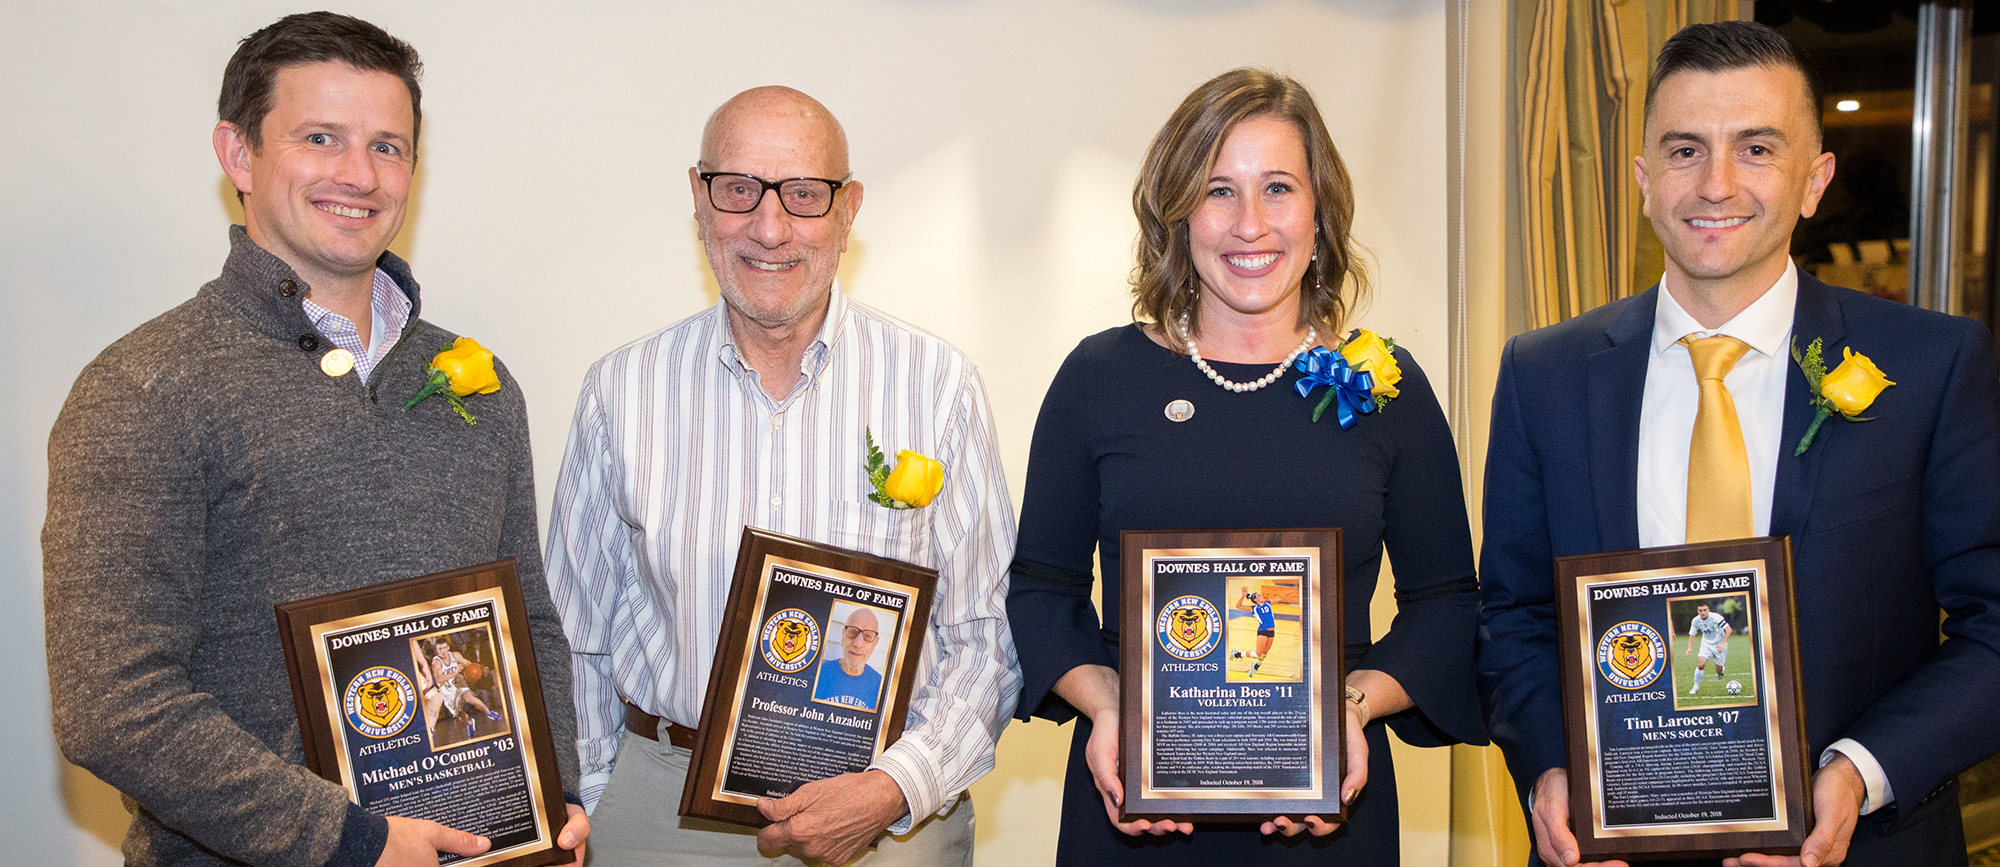 From Left: Michael O'Connor '03 (men's basketball), Professor John Anzalotti (contributor), Katharina Boes '11 (volleyball) and Tim Larocca '07 (men's soccer) were inducted into the Downes Athletic Hall of Fame on Friday night. (Photo by Chris Marion)